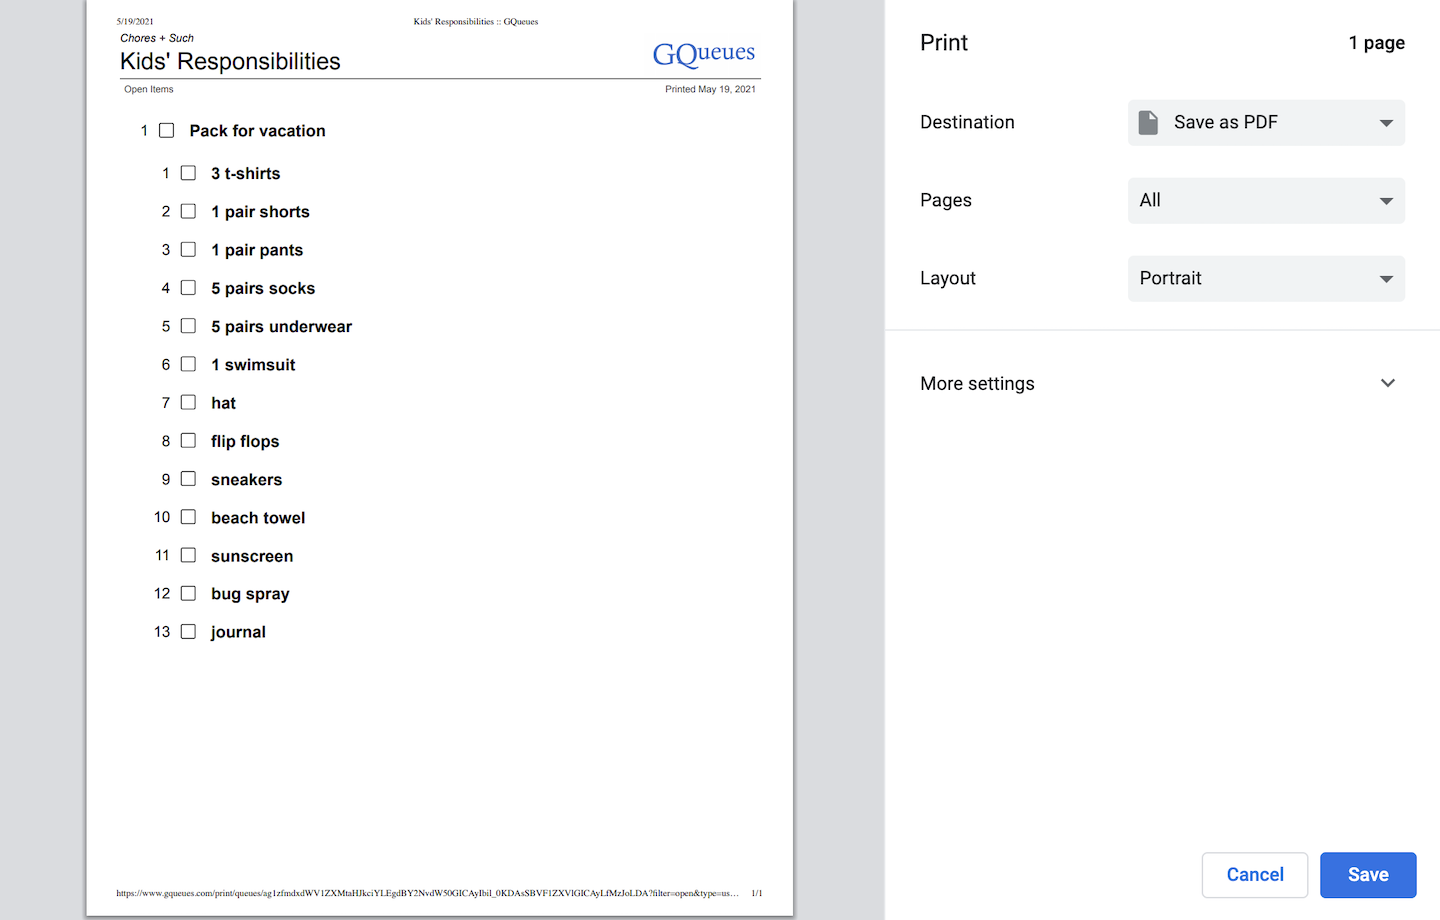 Use the print preview window to make sure the correct information is showing